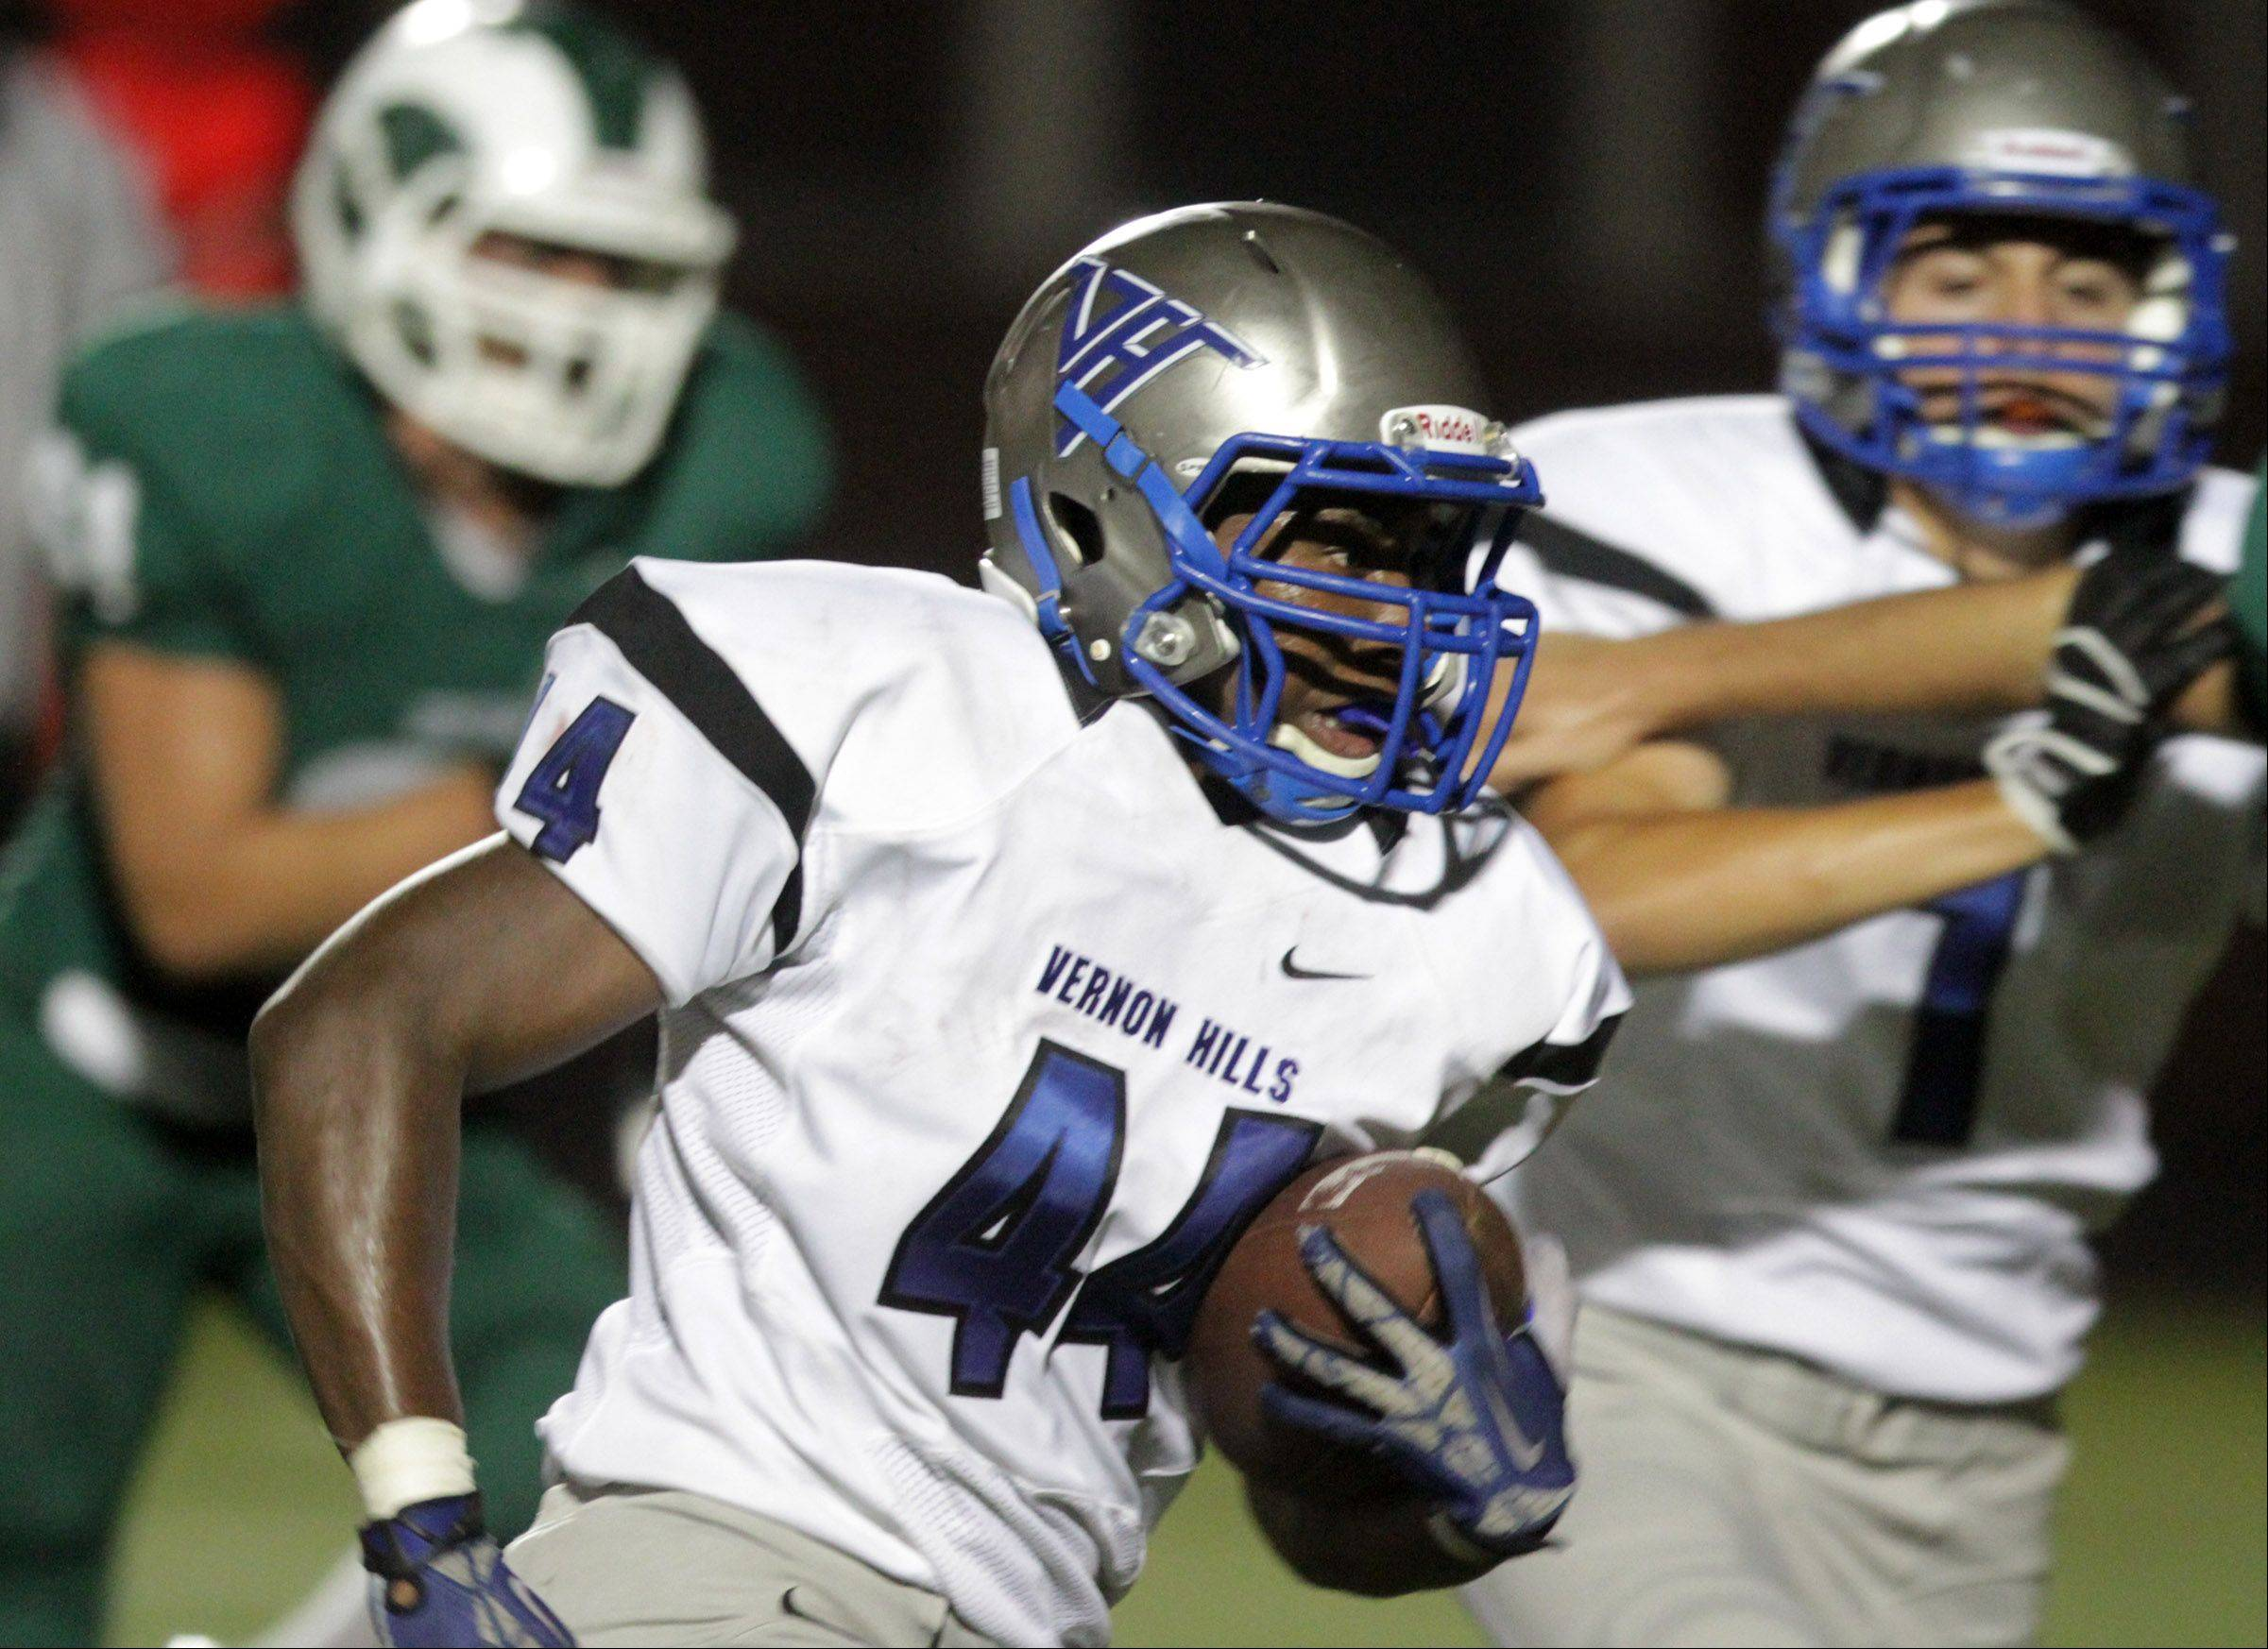 Vernon Hills� running back Kyle Thomas runs the ball against Grayslake Central.